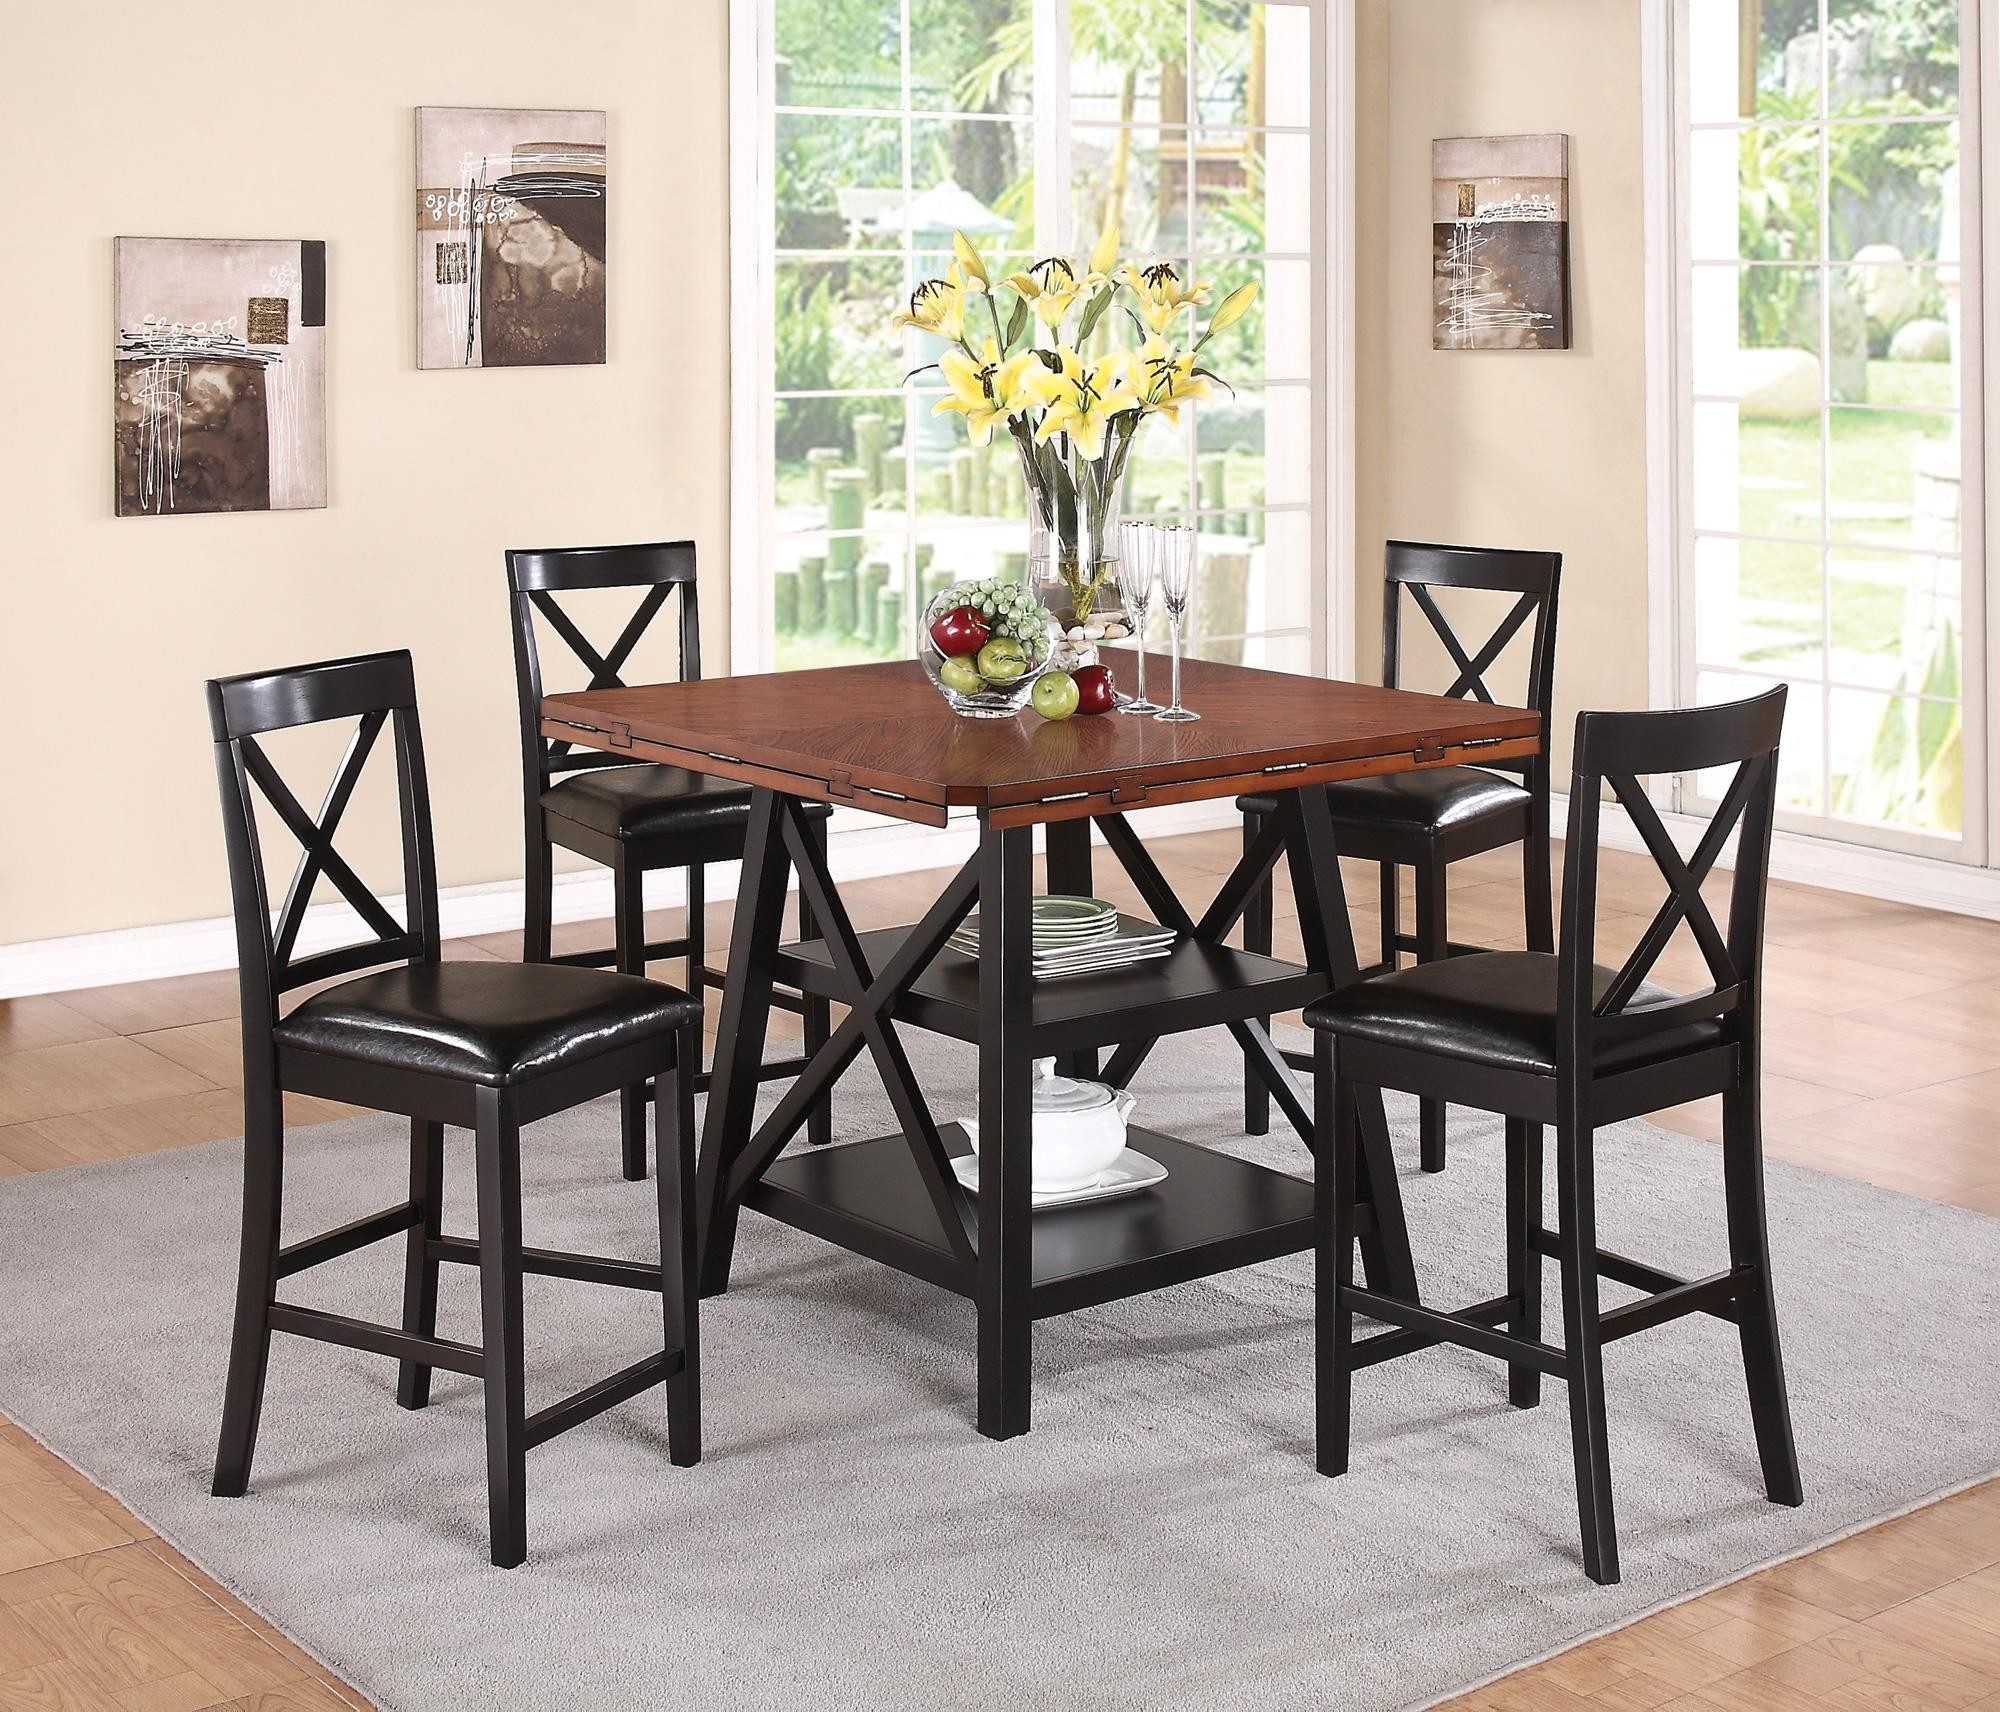 Dining Room Sets Austin Tx: Austin Round Counter Height Dining Room Set, 104178